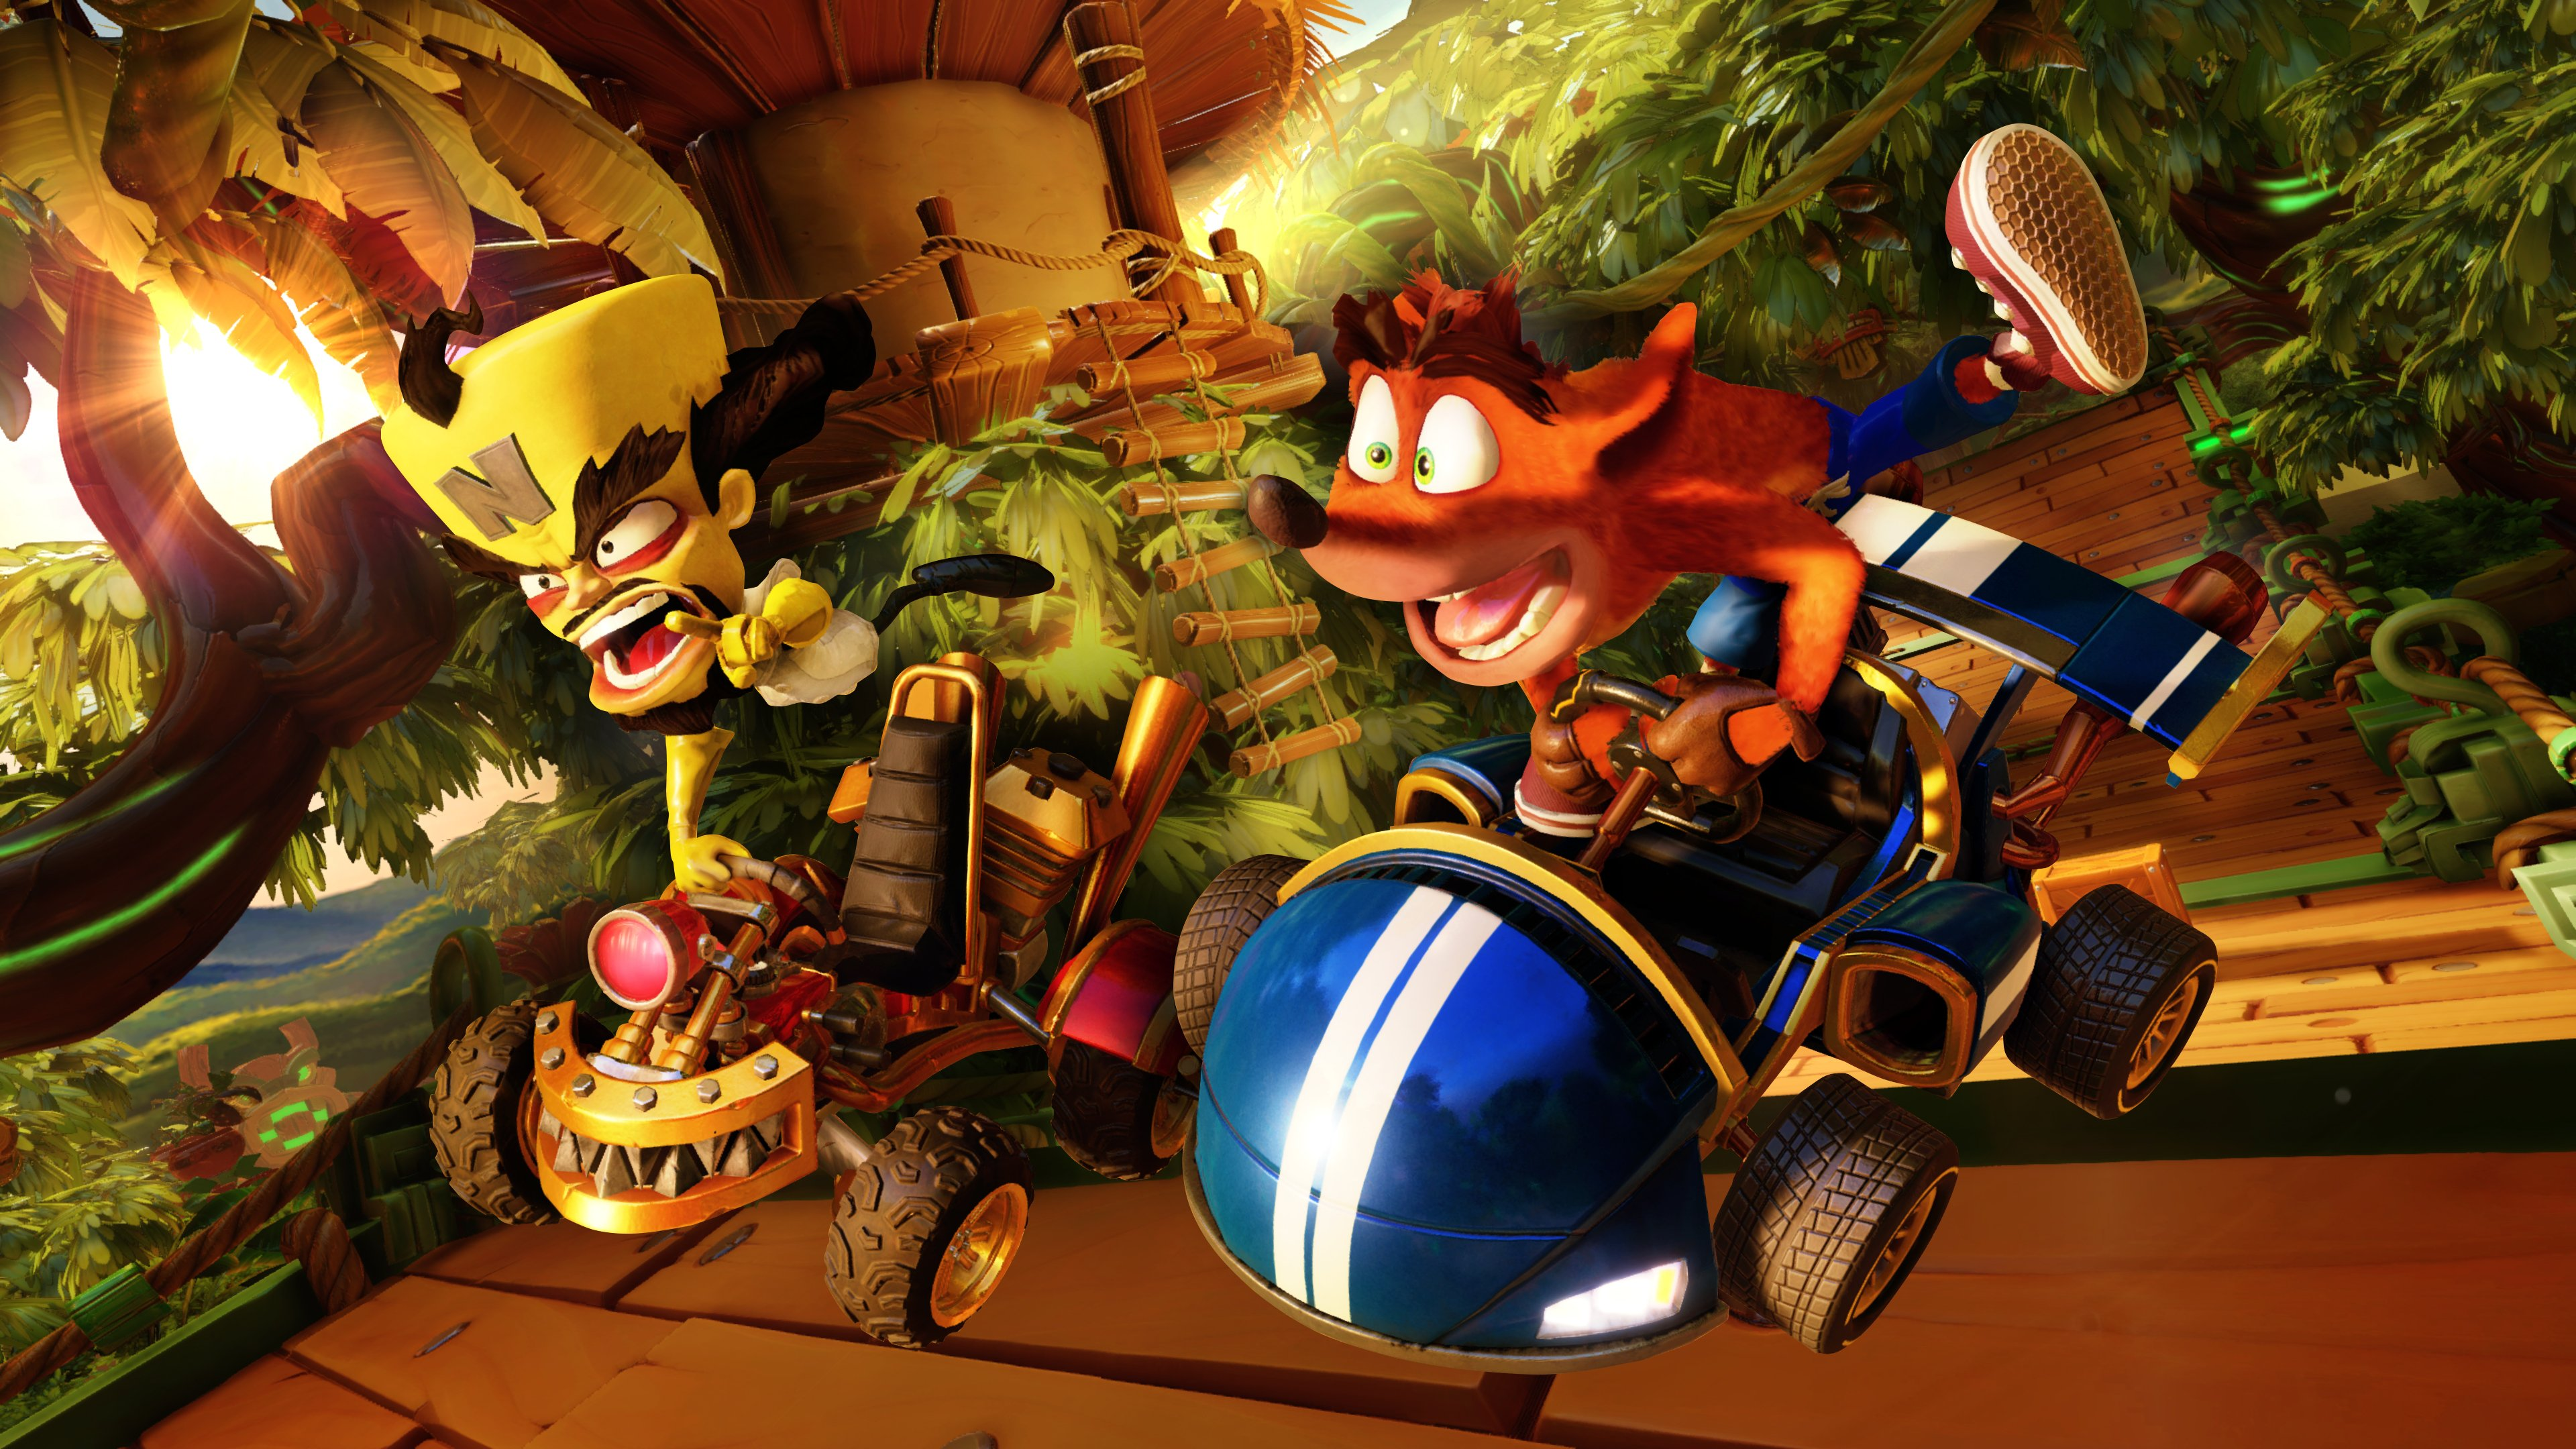 crash team racing android apk download